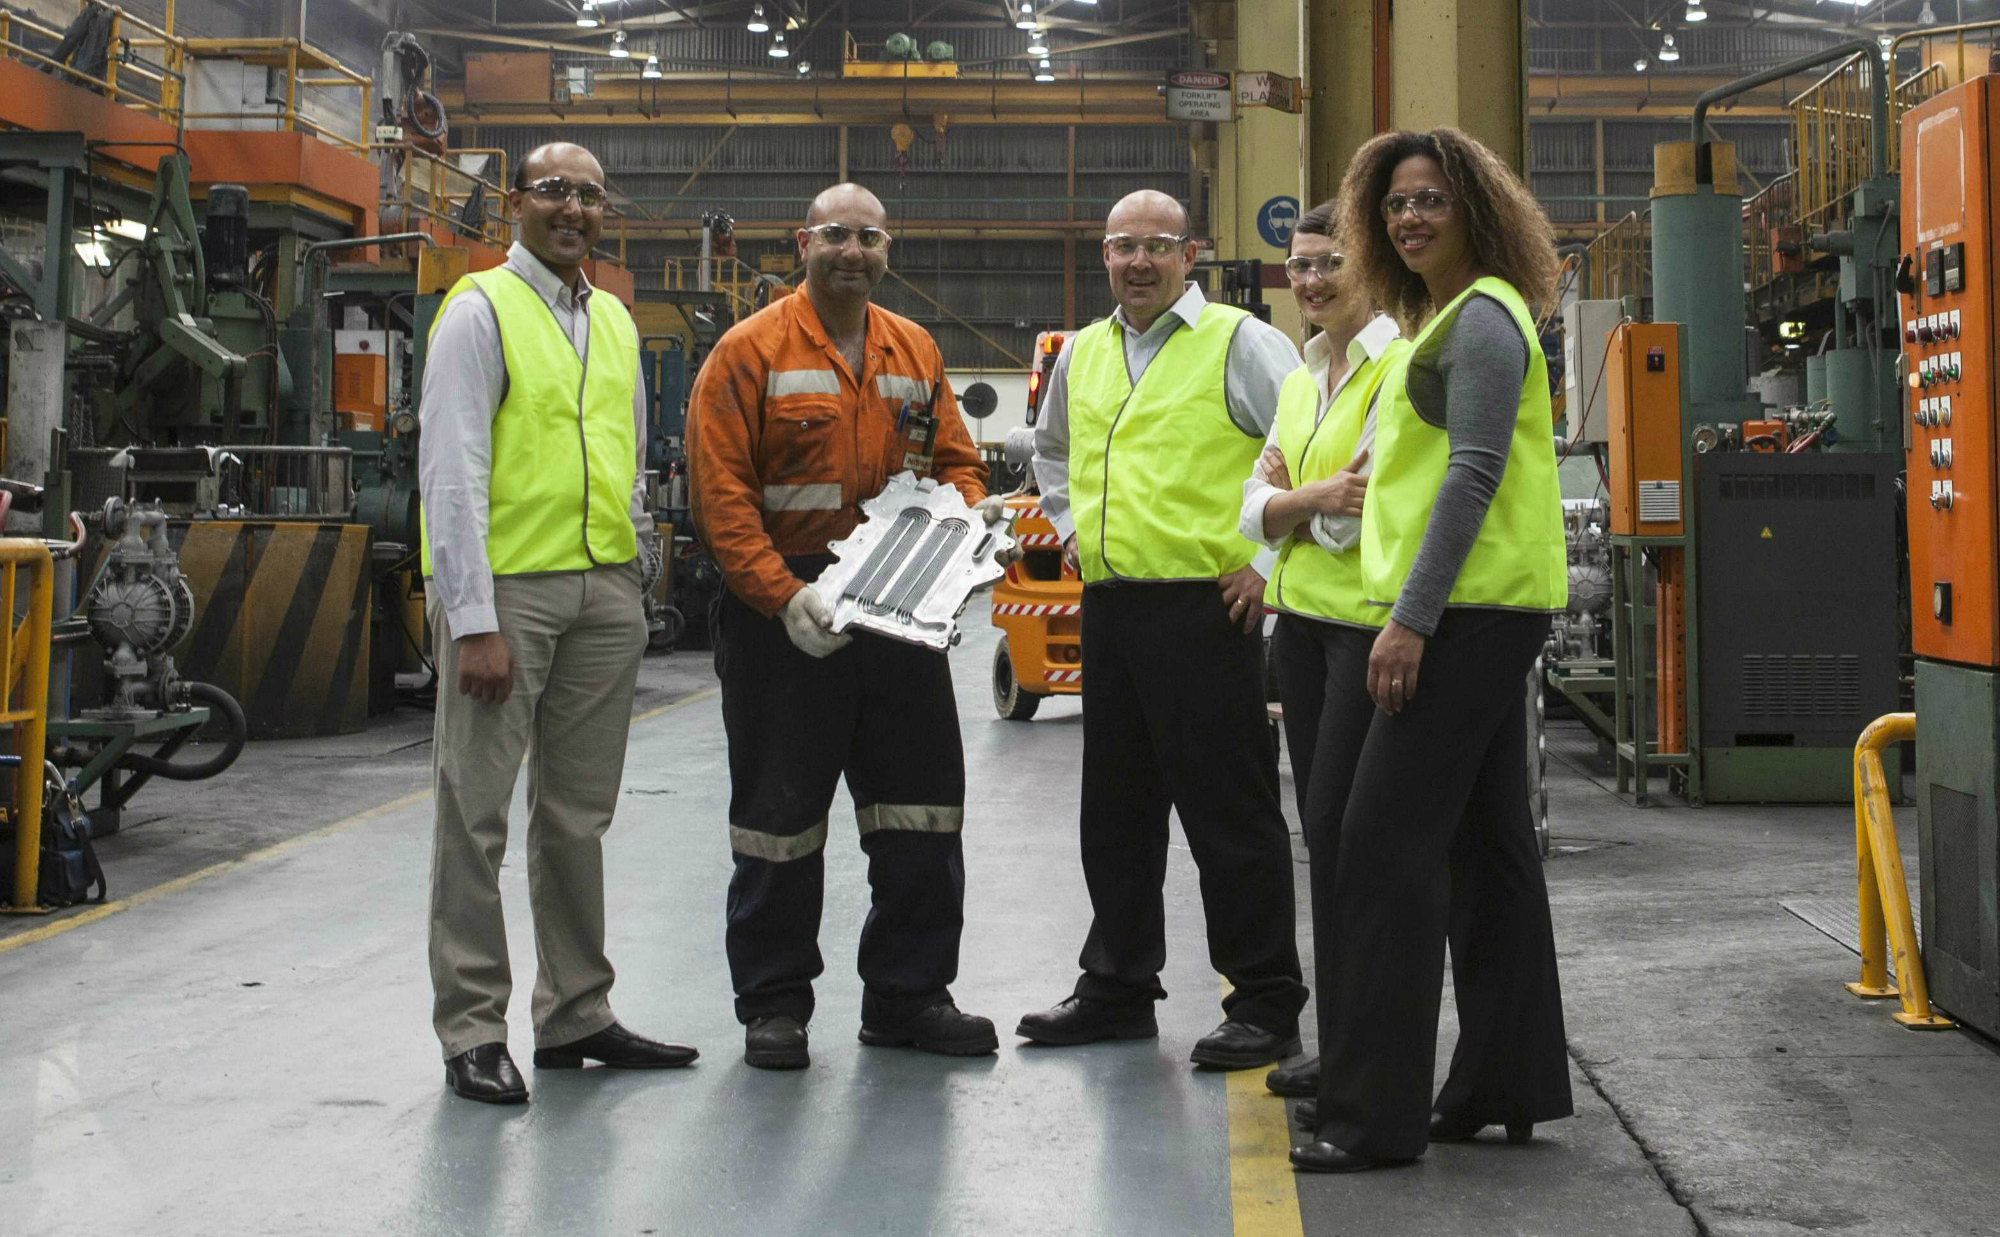 Smiles all around. The Victorian facility in South Dandenong will continue making parts to export around the world.